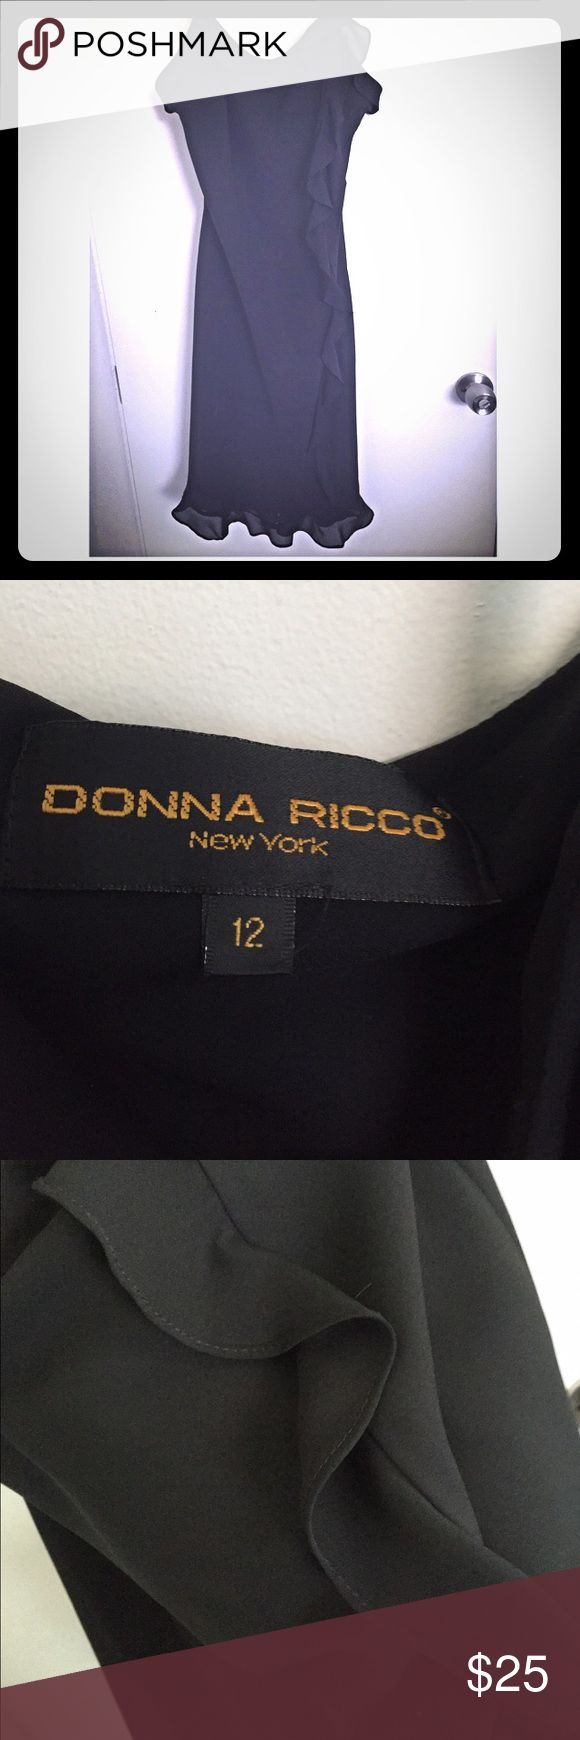 Donna Ricco Spaghetti Strap Dress Lined black polyester Donna Ricco dress has a ruffle down the left side and falls below the knee. There are still a few hot summer nights left and this would be great for dancing. Excellent condition. Donna Ricco Dresses Midi